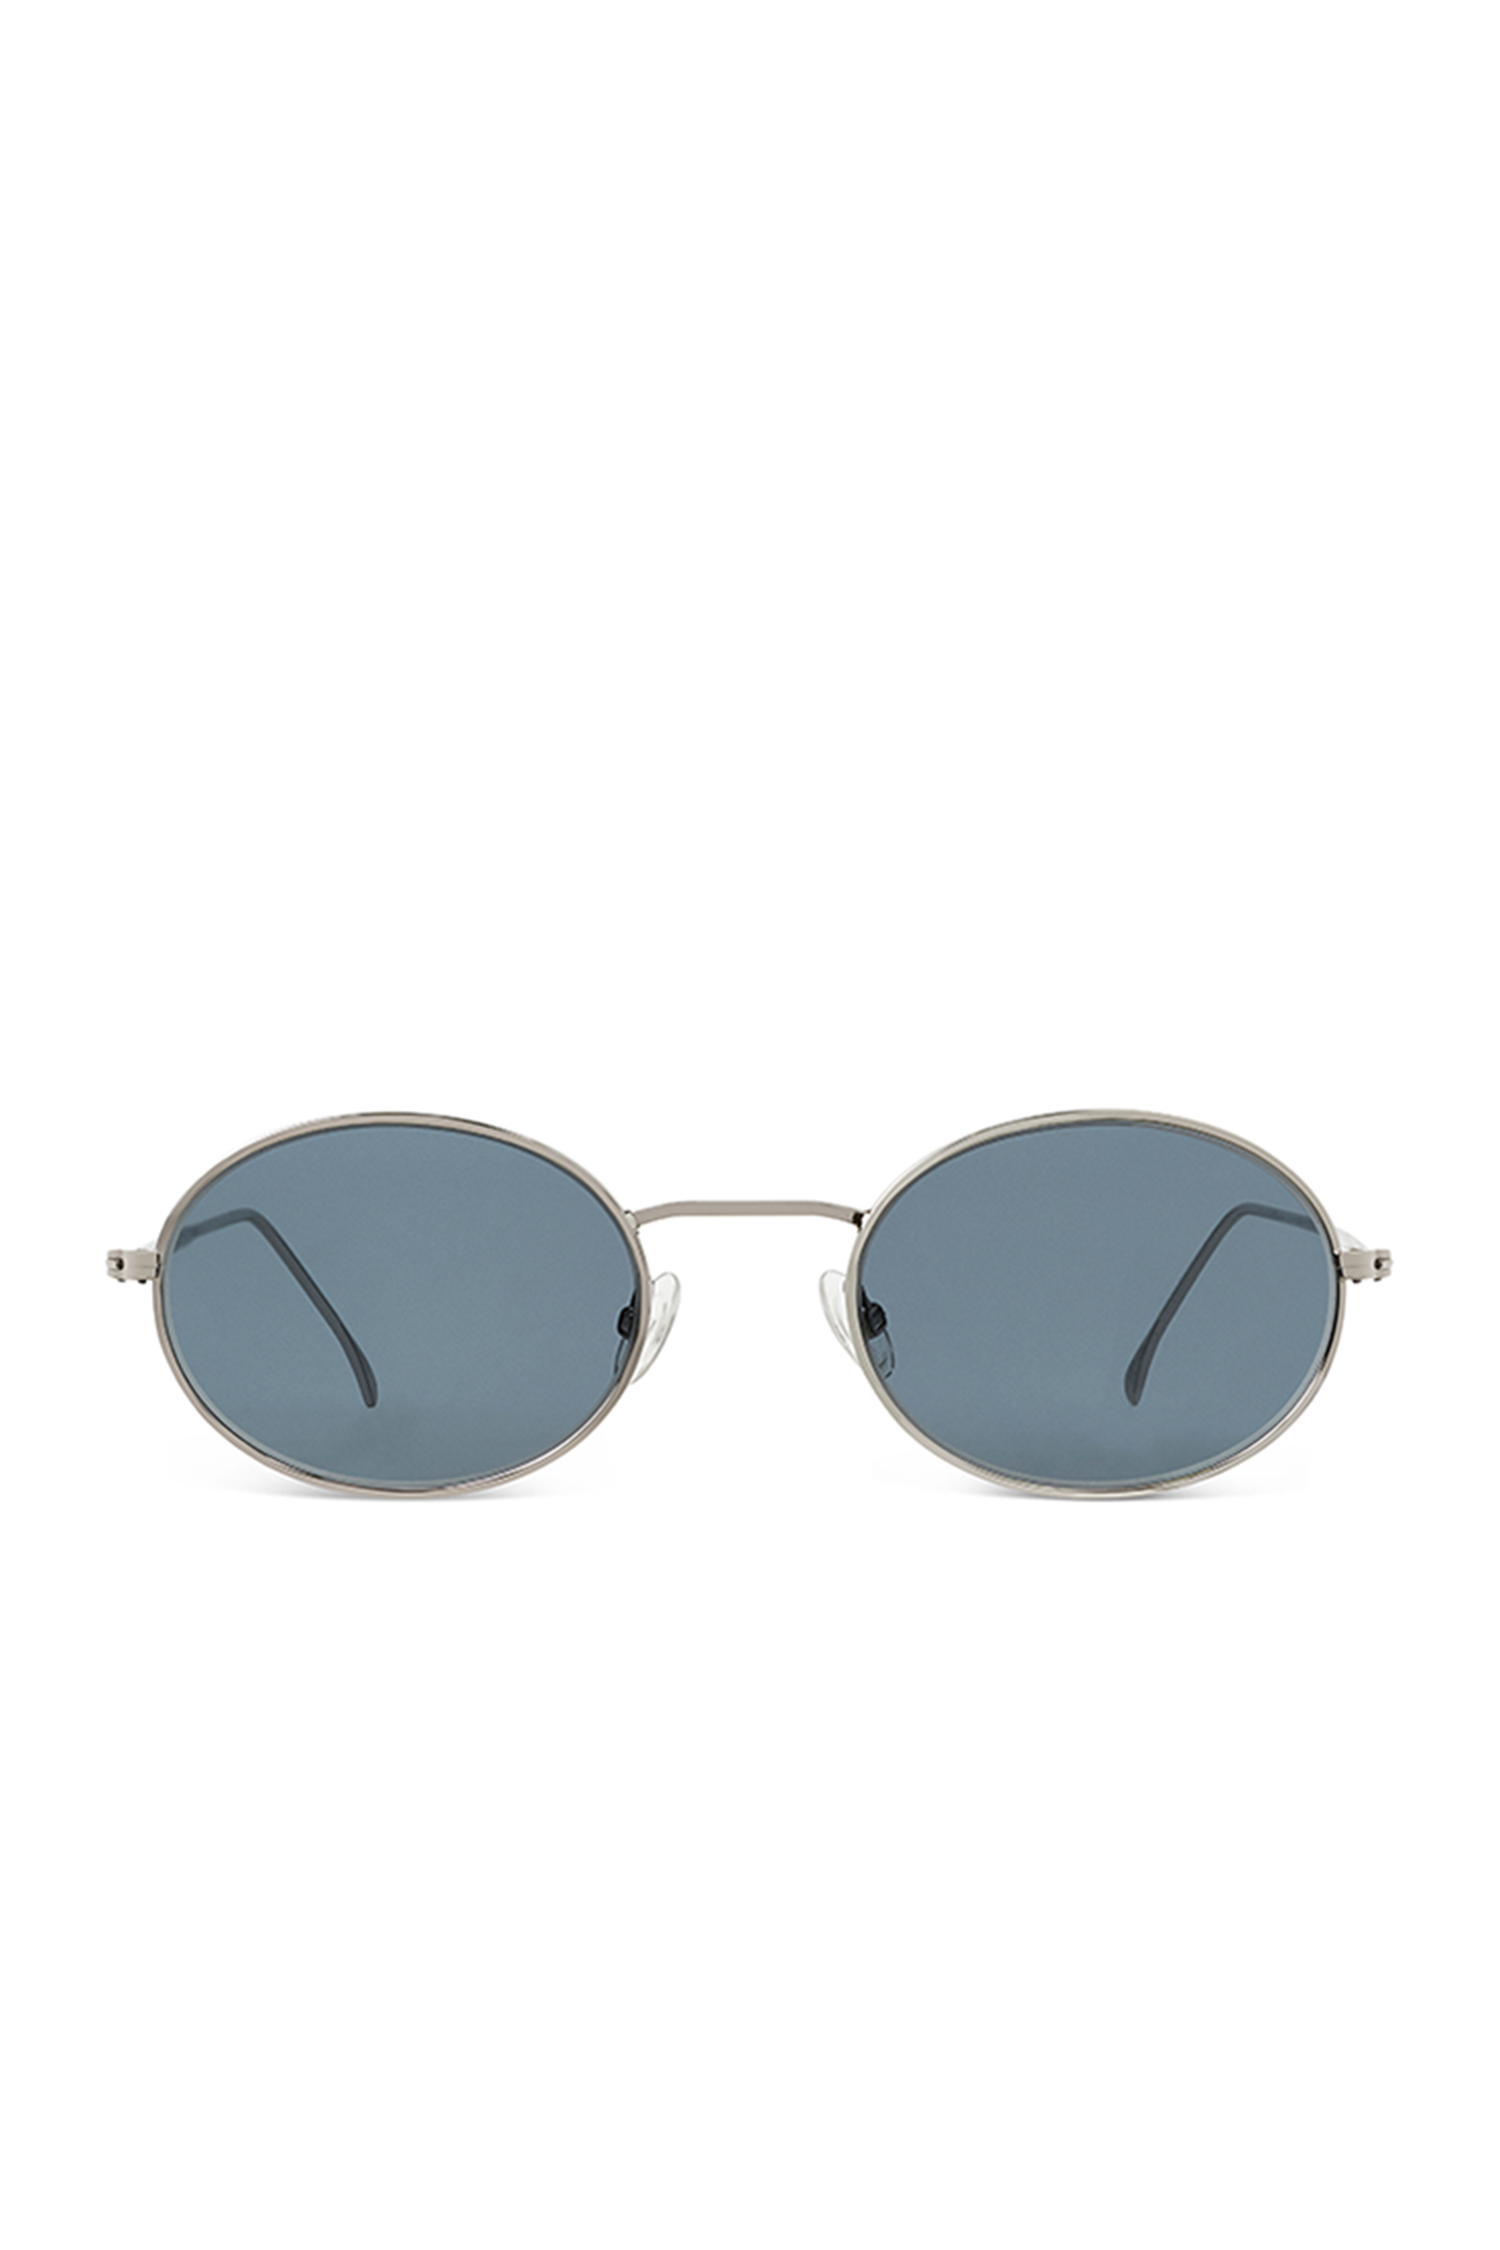 Theodore - Silver/ Blue  Lenses